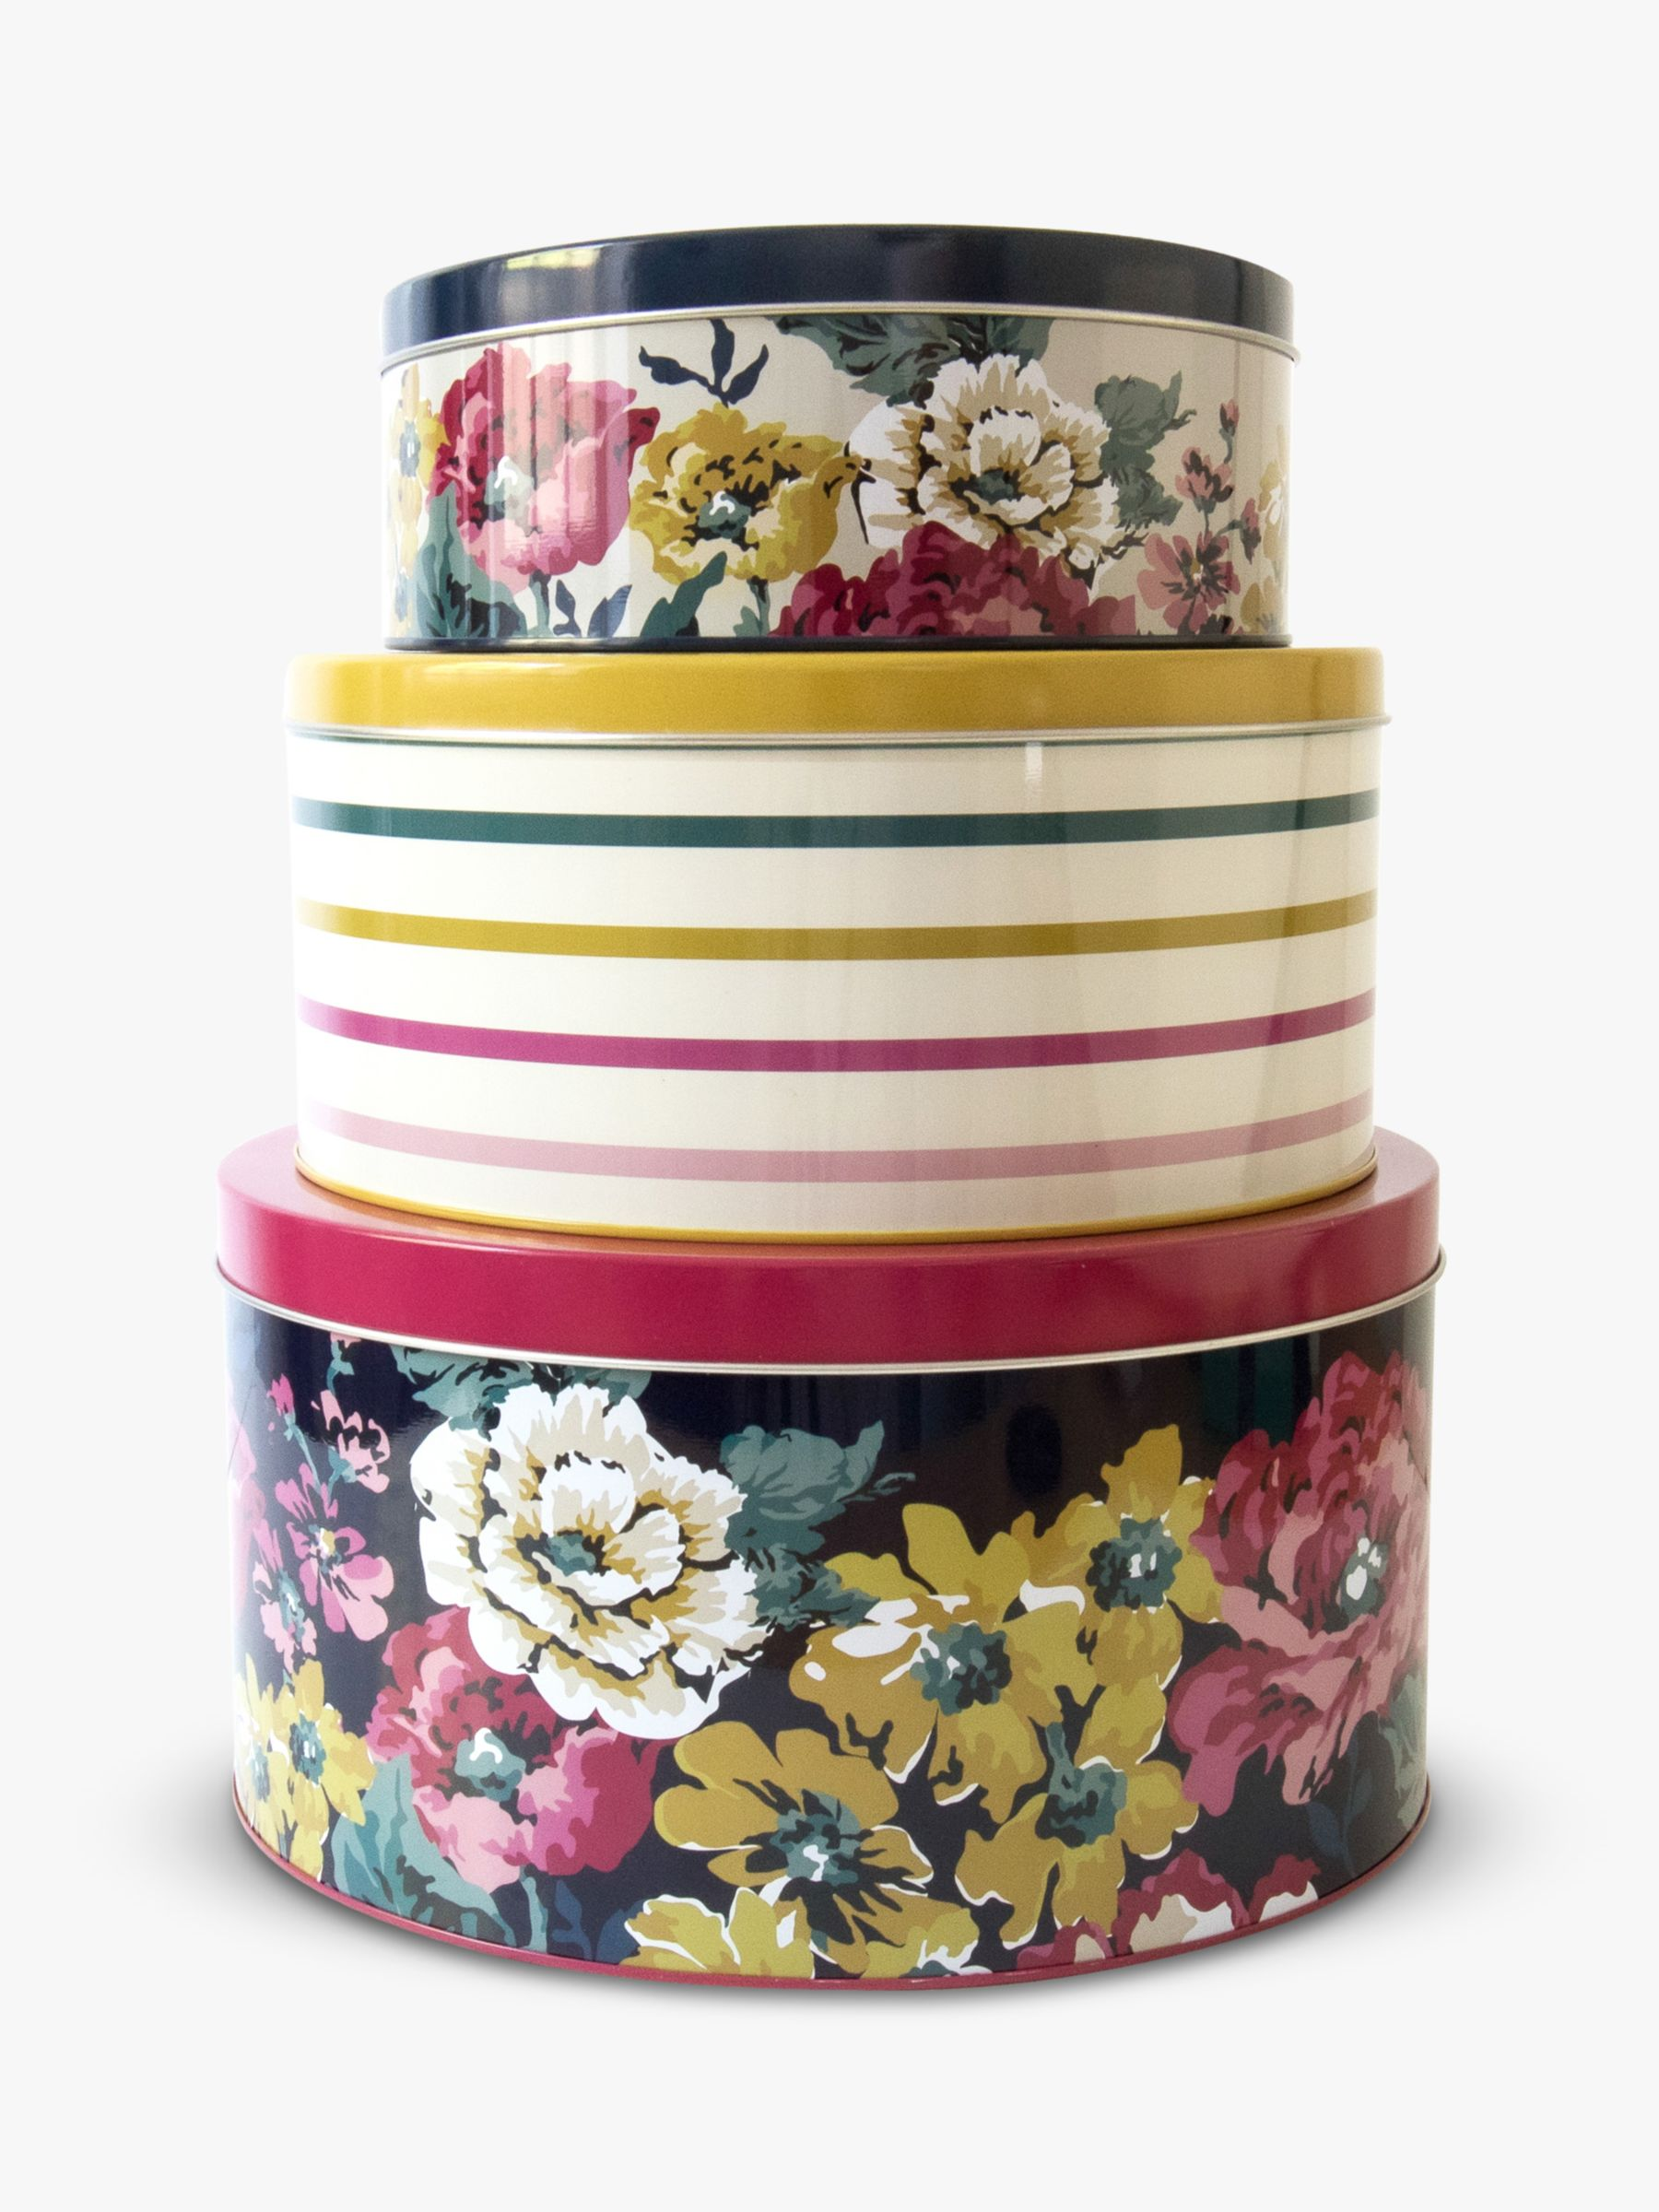 Joules Joules Cambridge Floral Nested Cake Tins